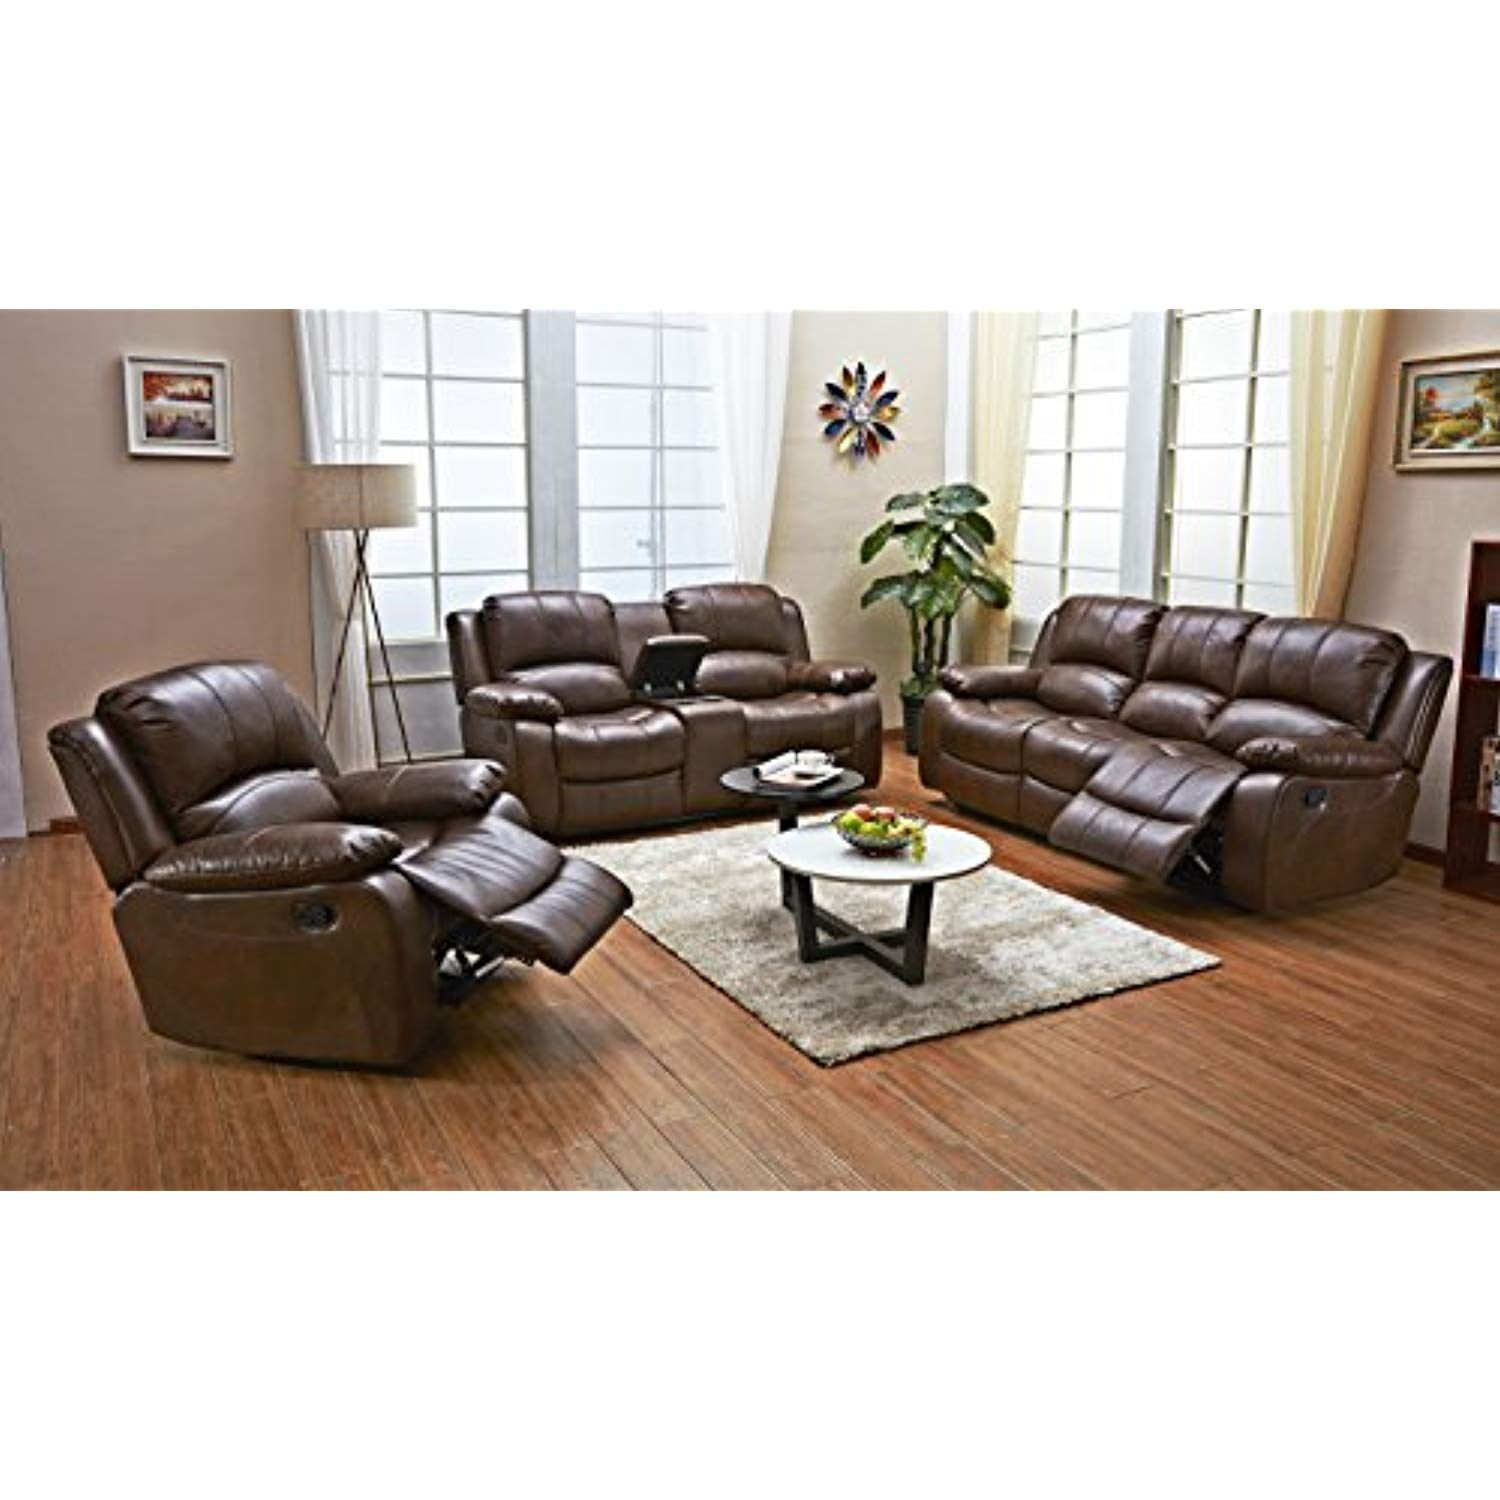 Betsy Furniture 3pc Bonded Leather Recliner Set Living Room Set In Brown Sofa Loveseat Chair Pill Couches Living Room 3 Piece Living Room Set Living Room Sets